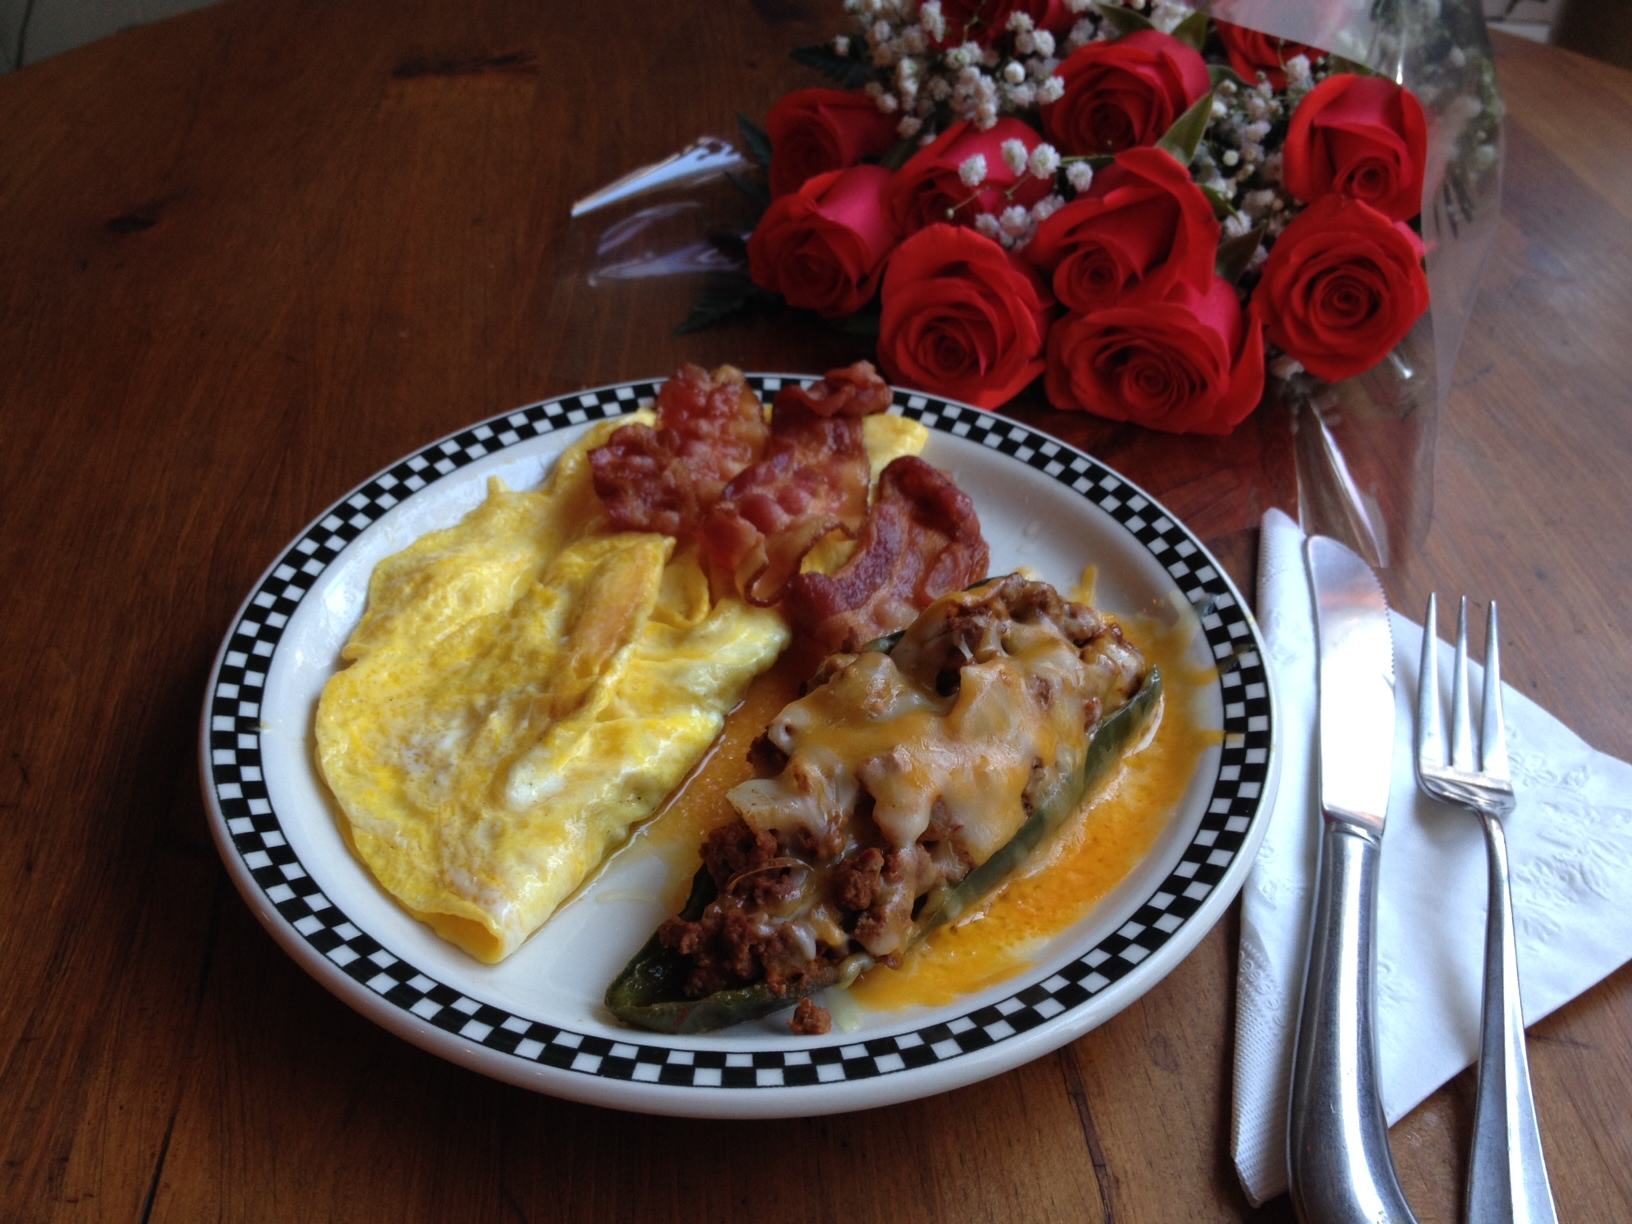 My reward for a good showing, Stuffed Poblano Chili Pepper, Bacon and a Cheese Omelet, and my second bulletproof coffee. Suzanne will get the Roses when he gets home.